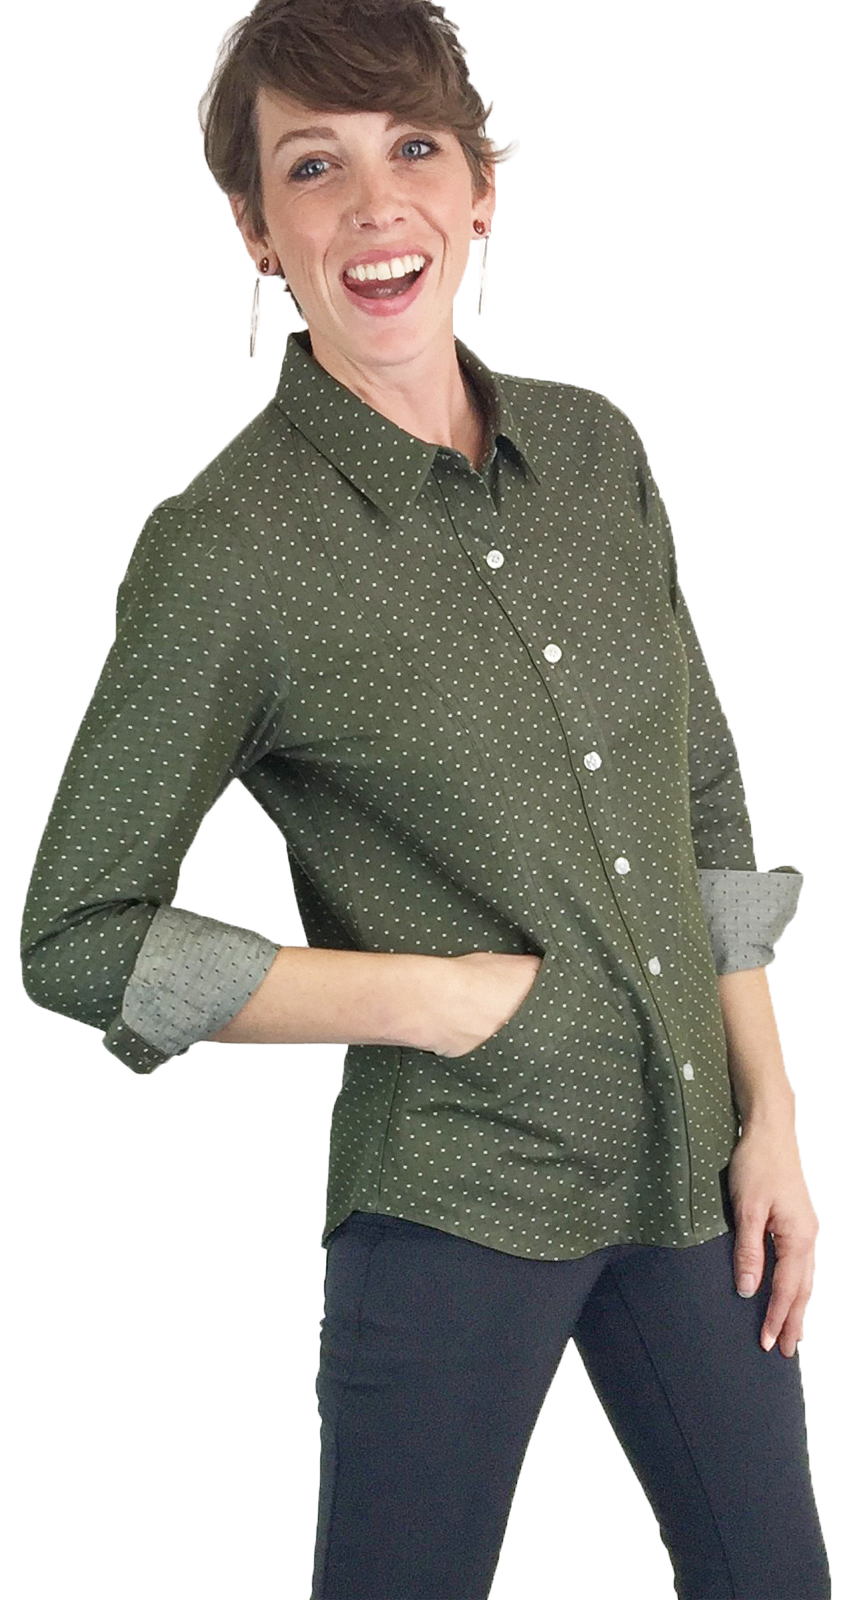 women's utility shirt with pockets